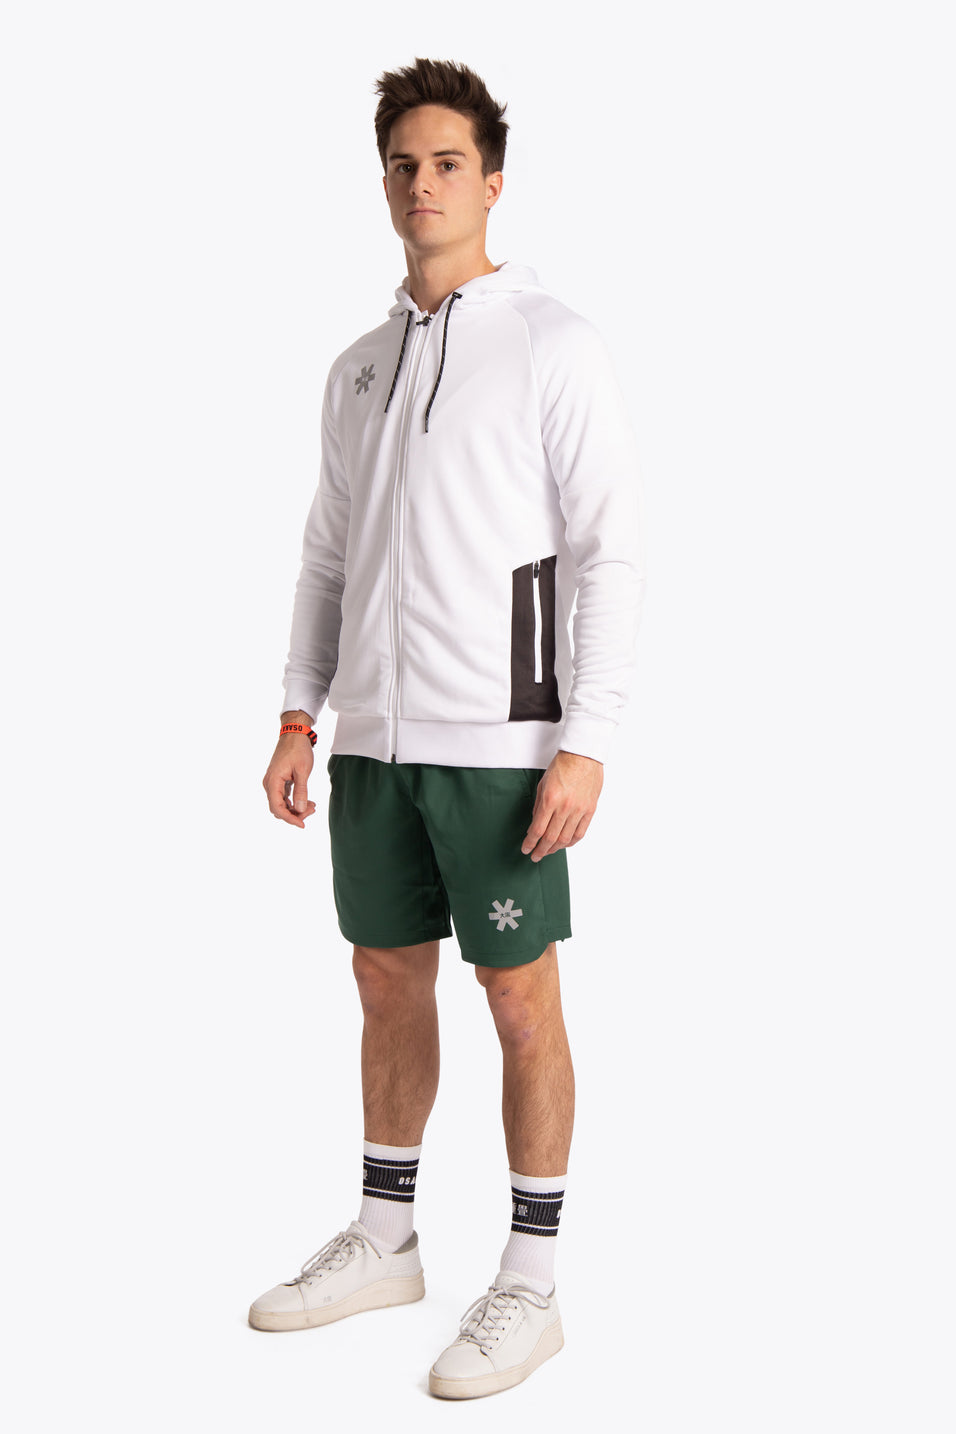 Osakaworld sports outfit white